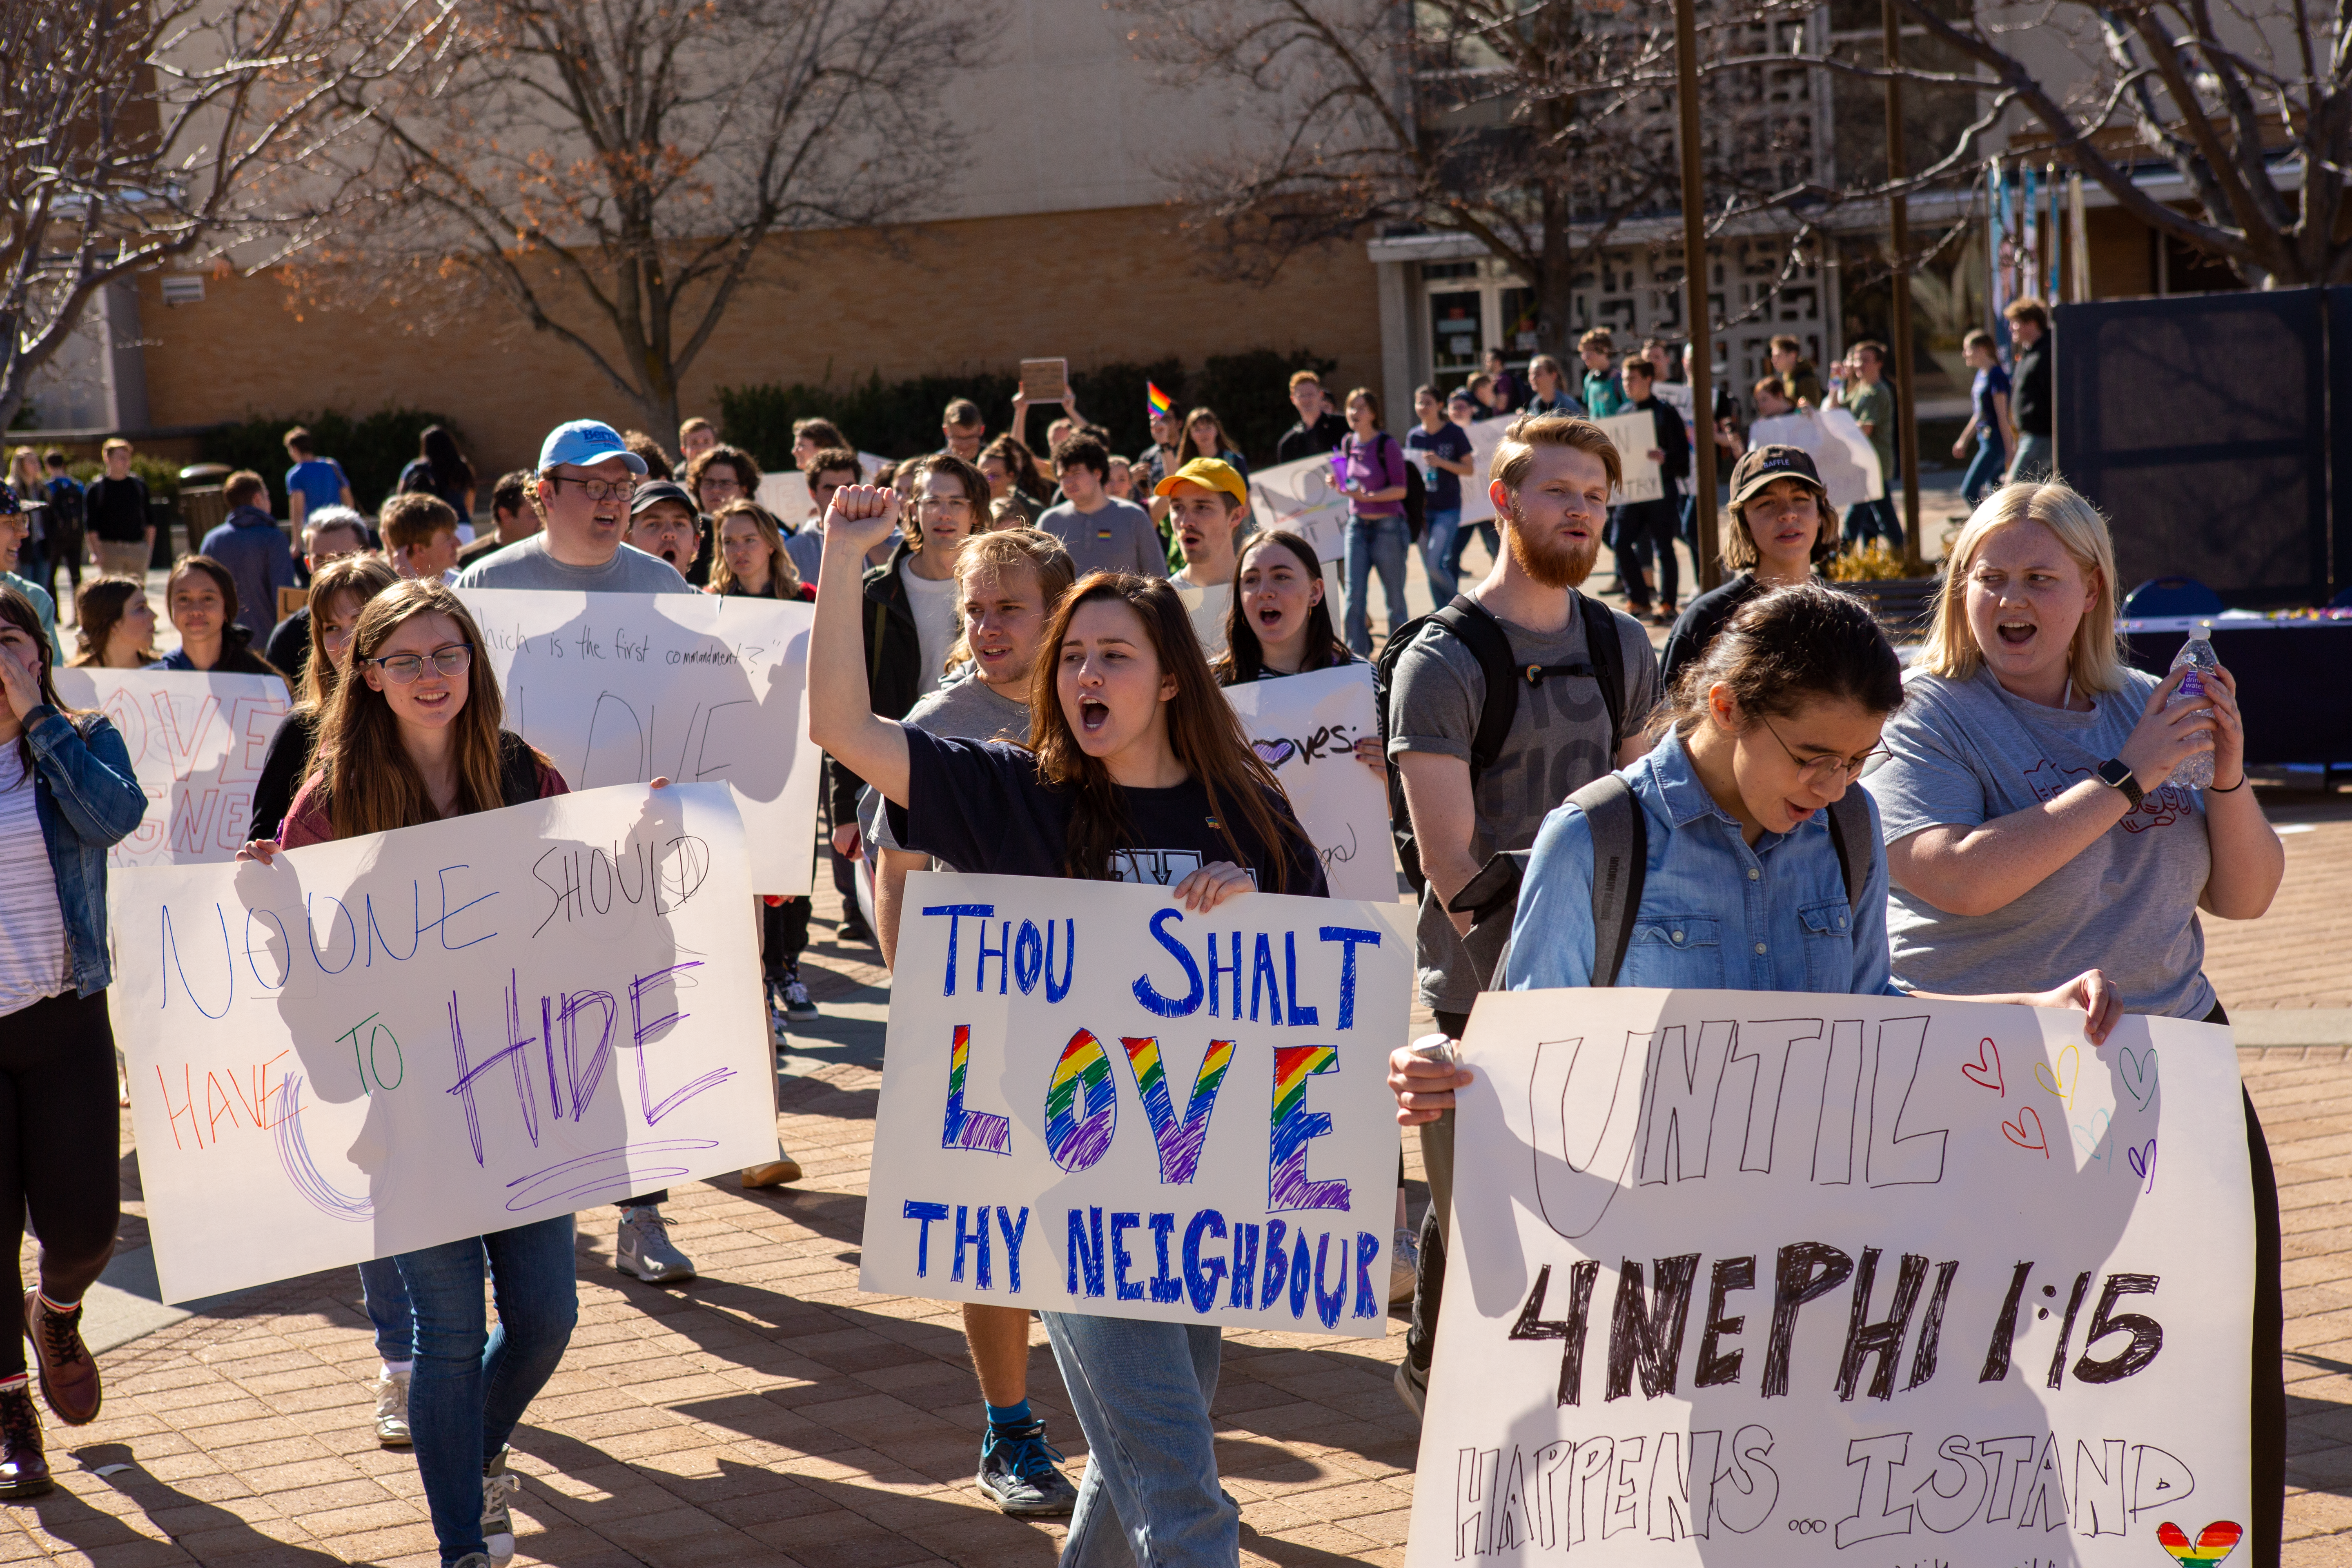 Brigham Young students protesting in Provo, Utah, on March 4.